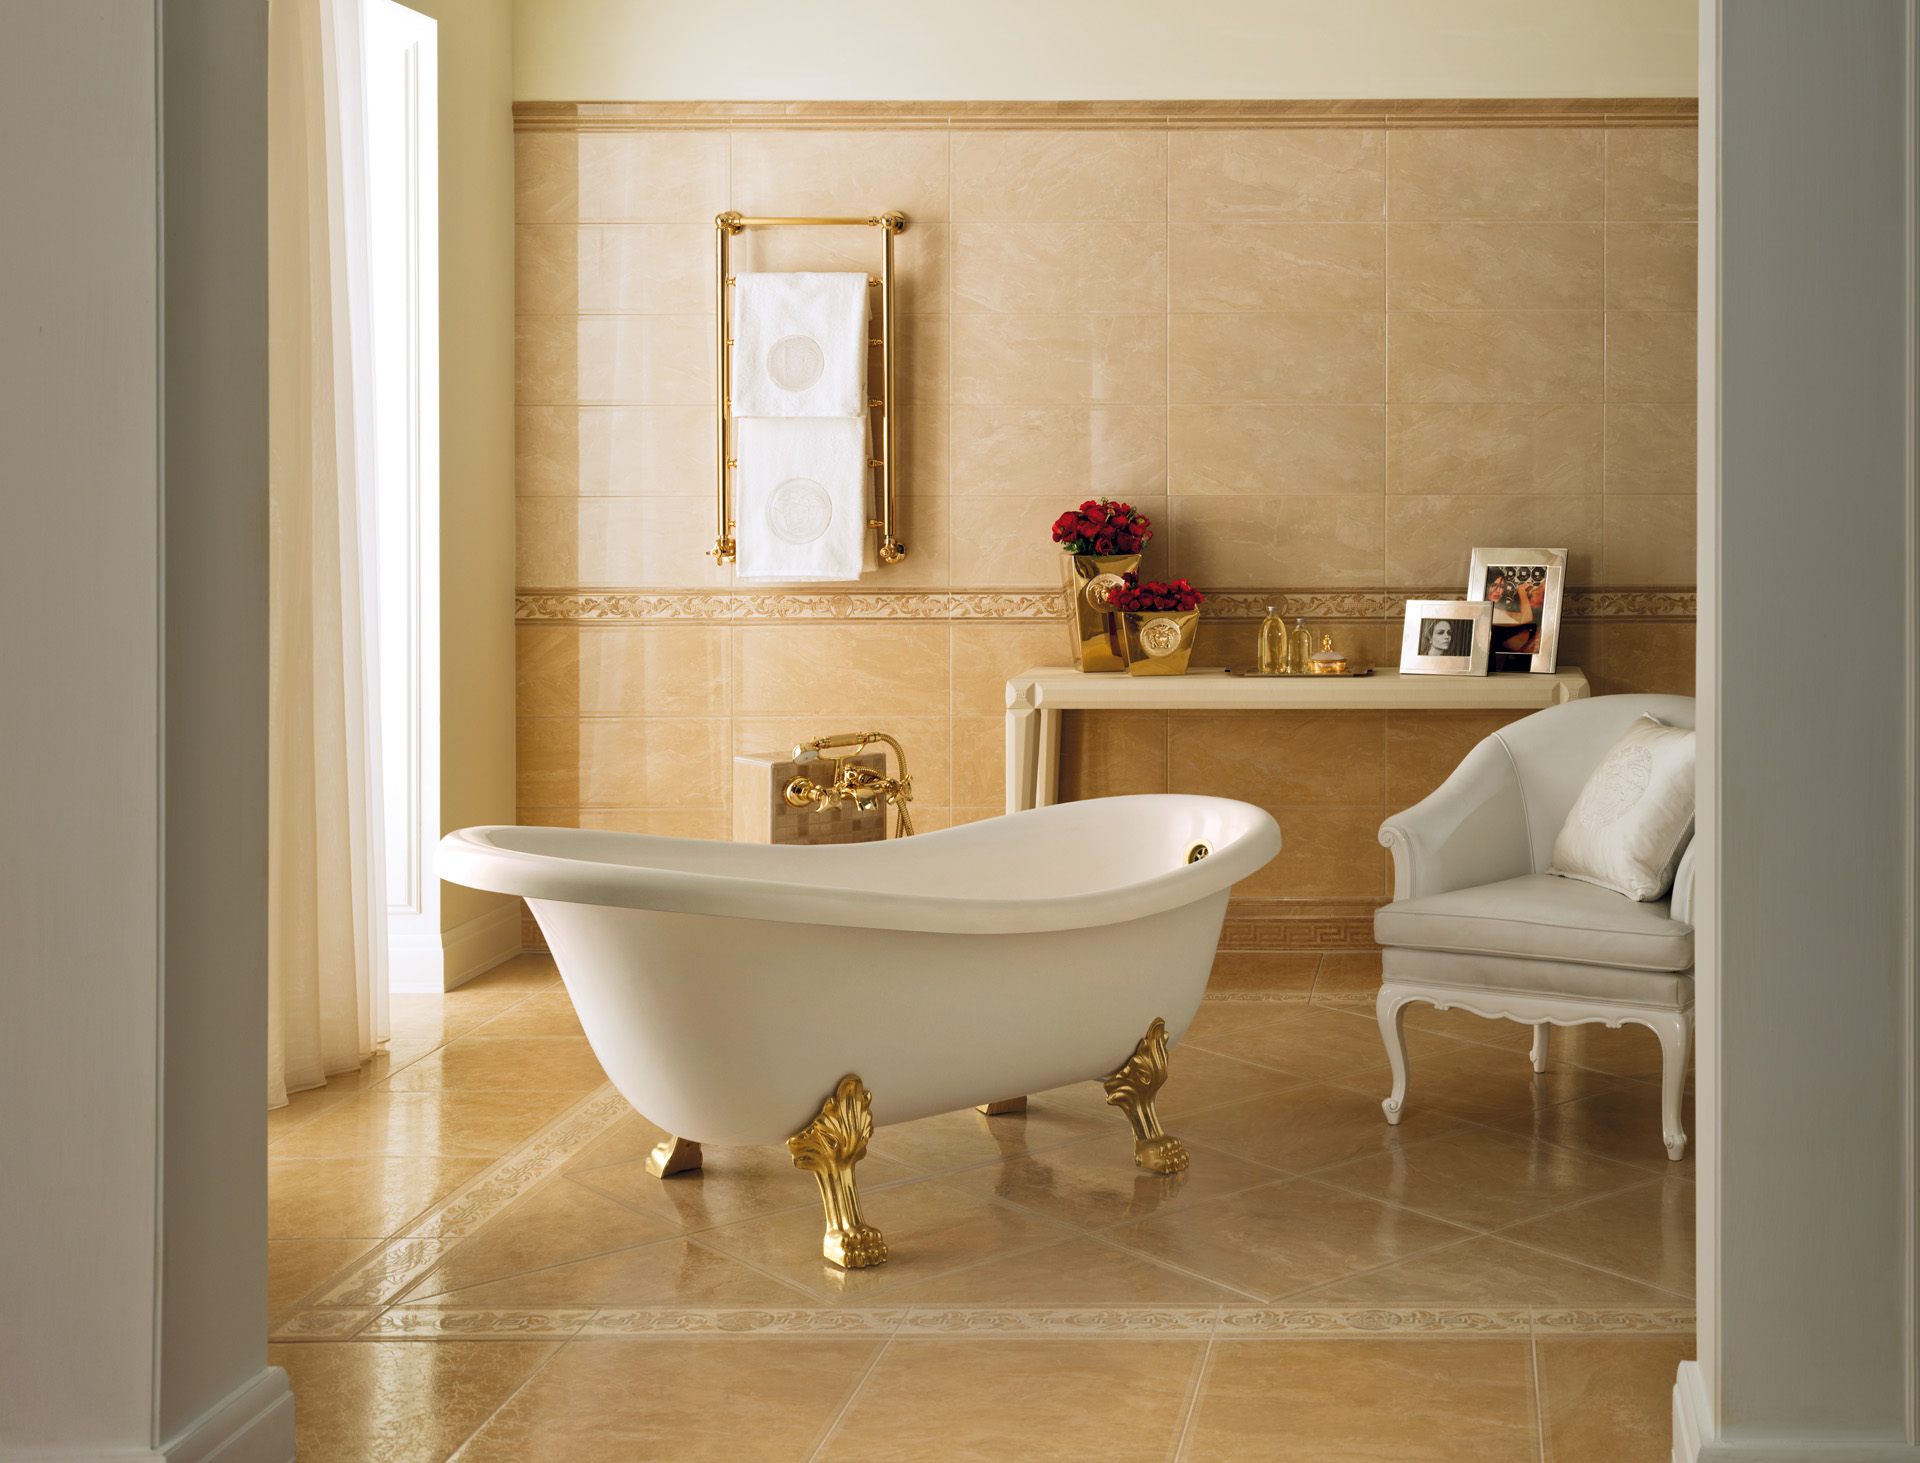 Venere oro ceramiche addeo